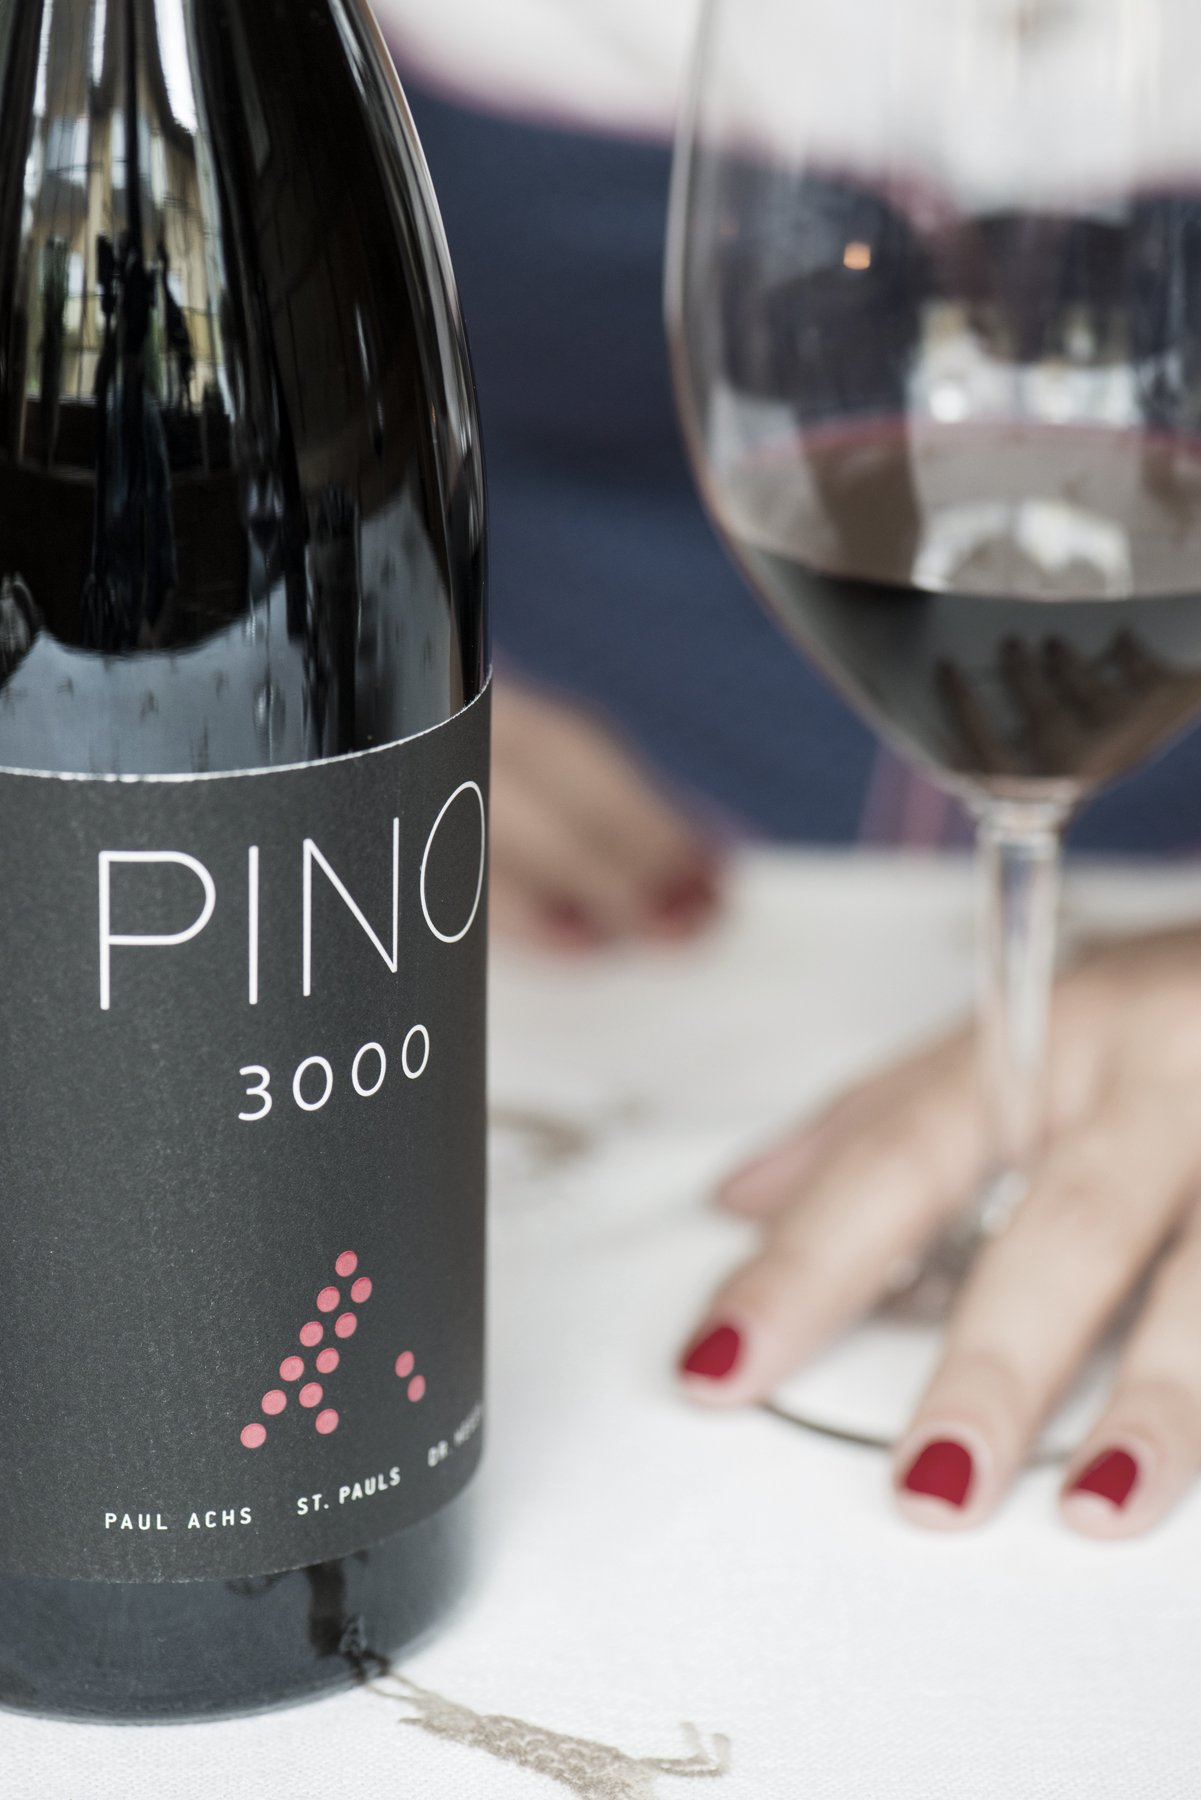 PINO 3000 - the only three-country blend in the world